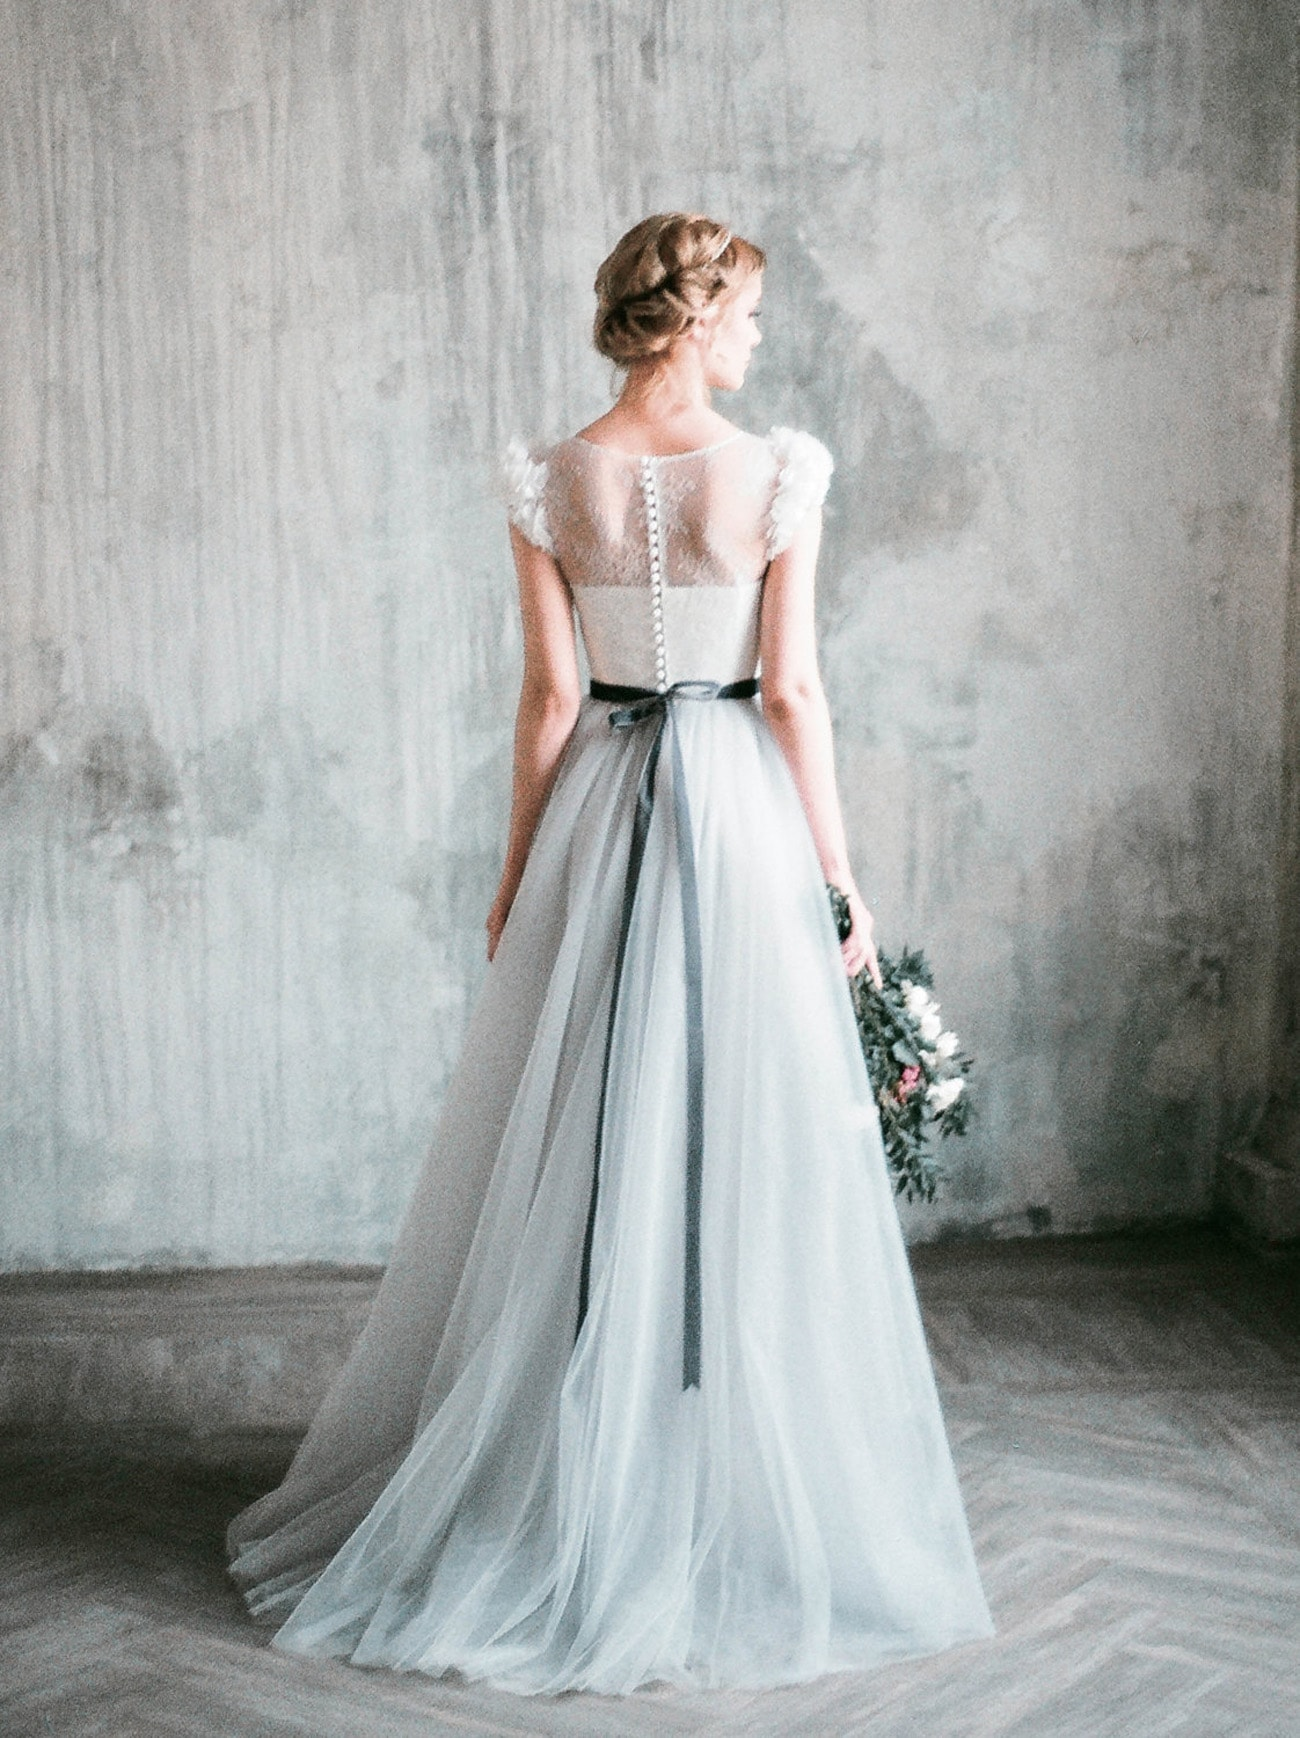 Wedding dresses for pear or triangle shape brides for Gray lace wedding dress